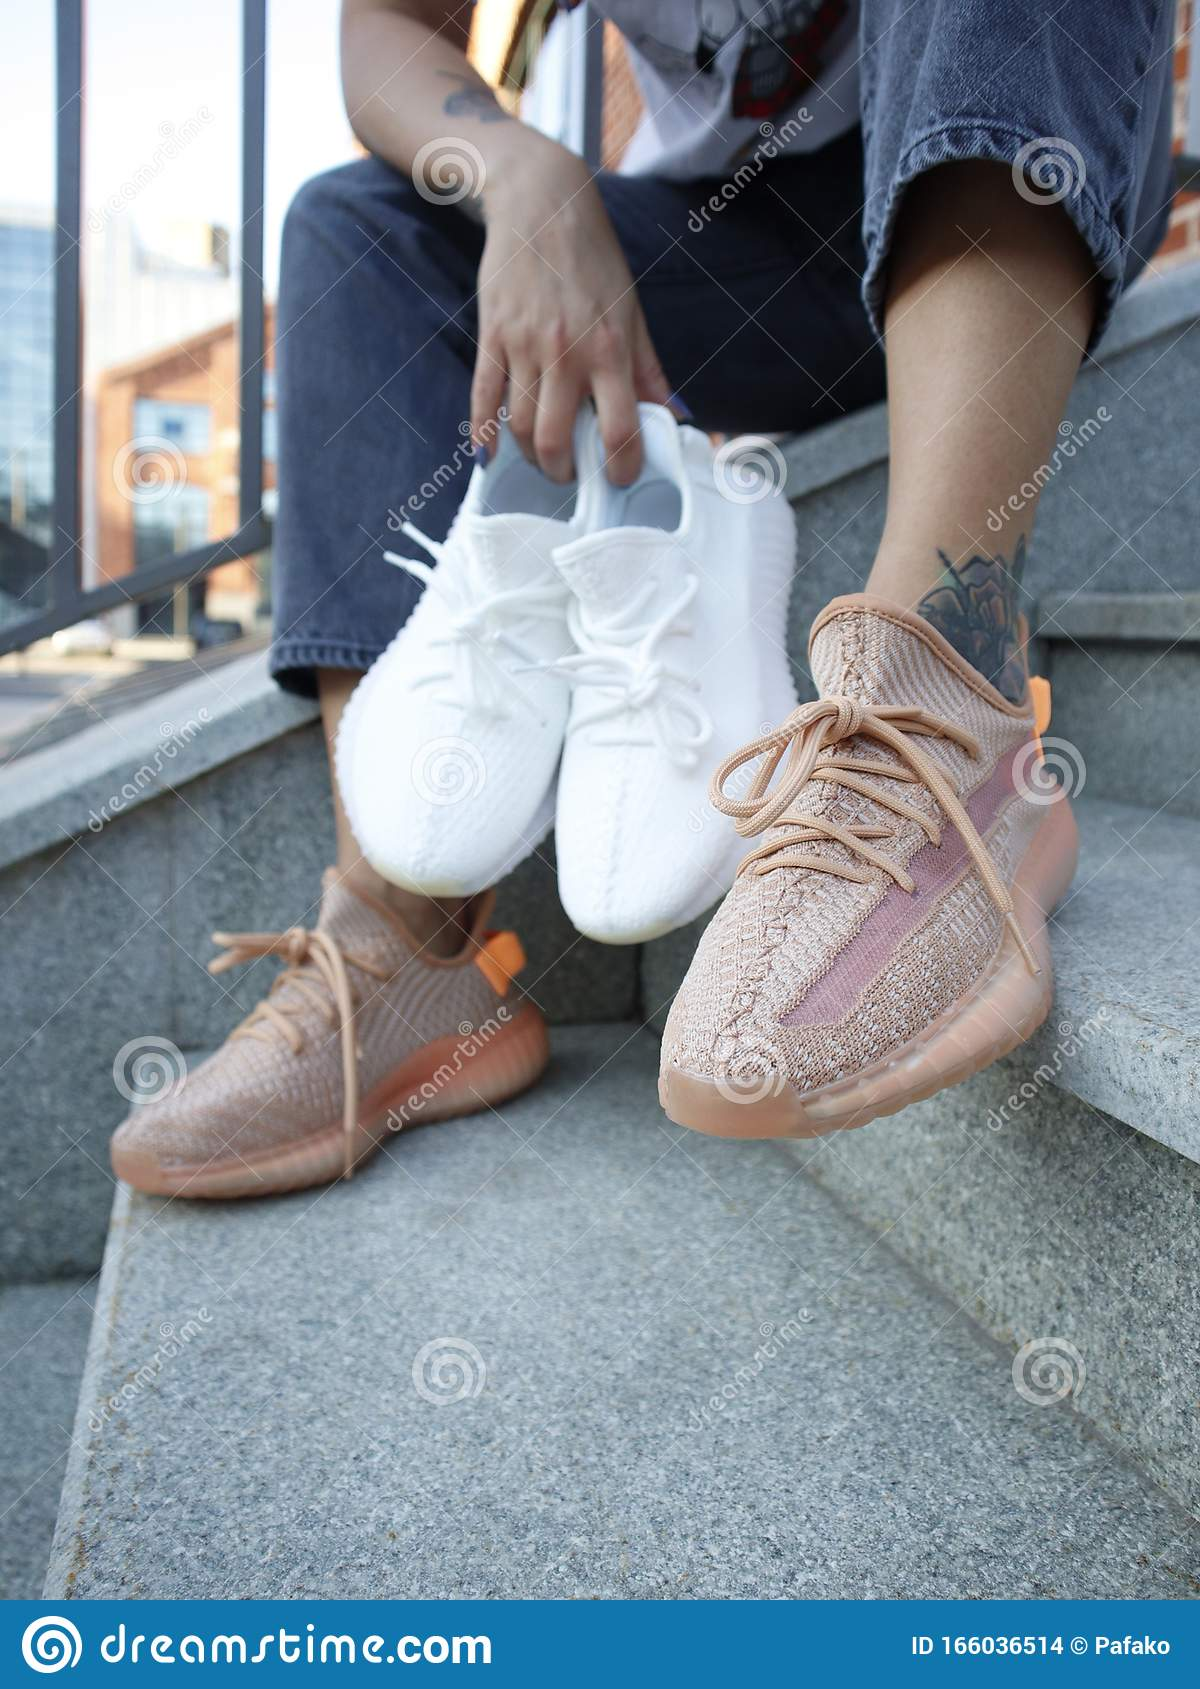 A Girl In Jeans And Cream Adidas Yeezy